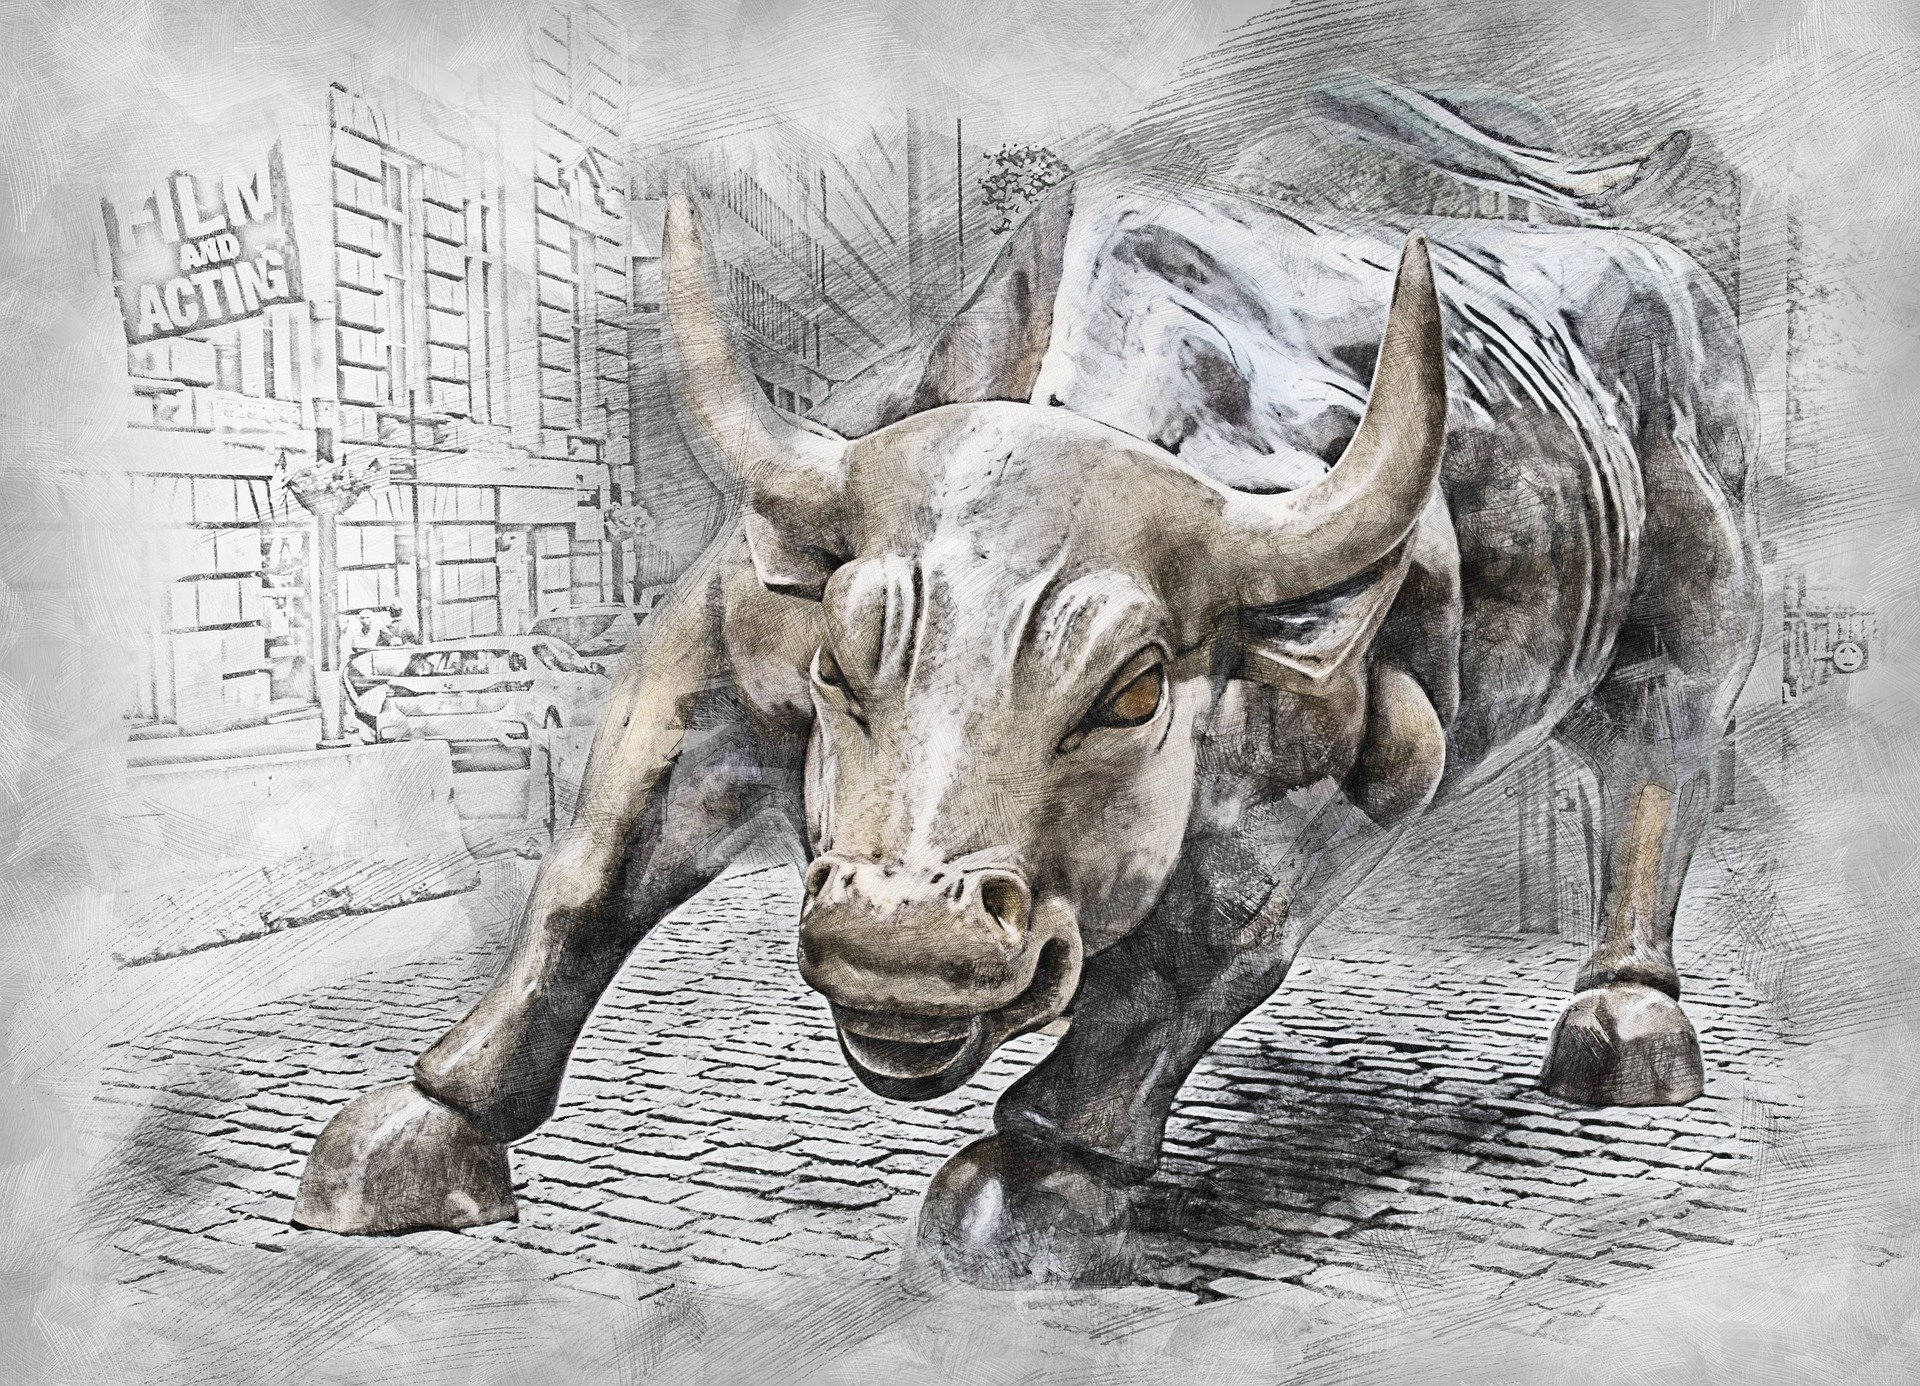 Sketch of Wall Street bull